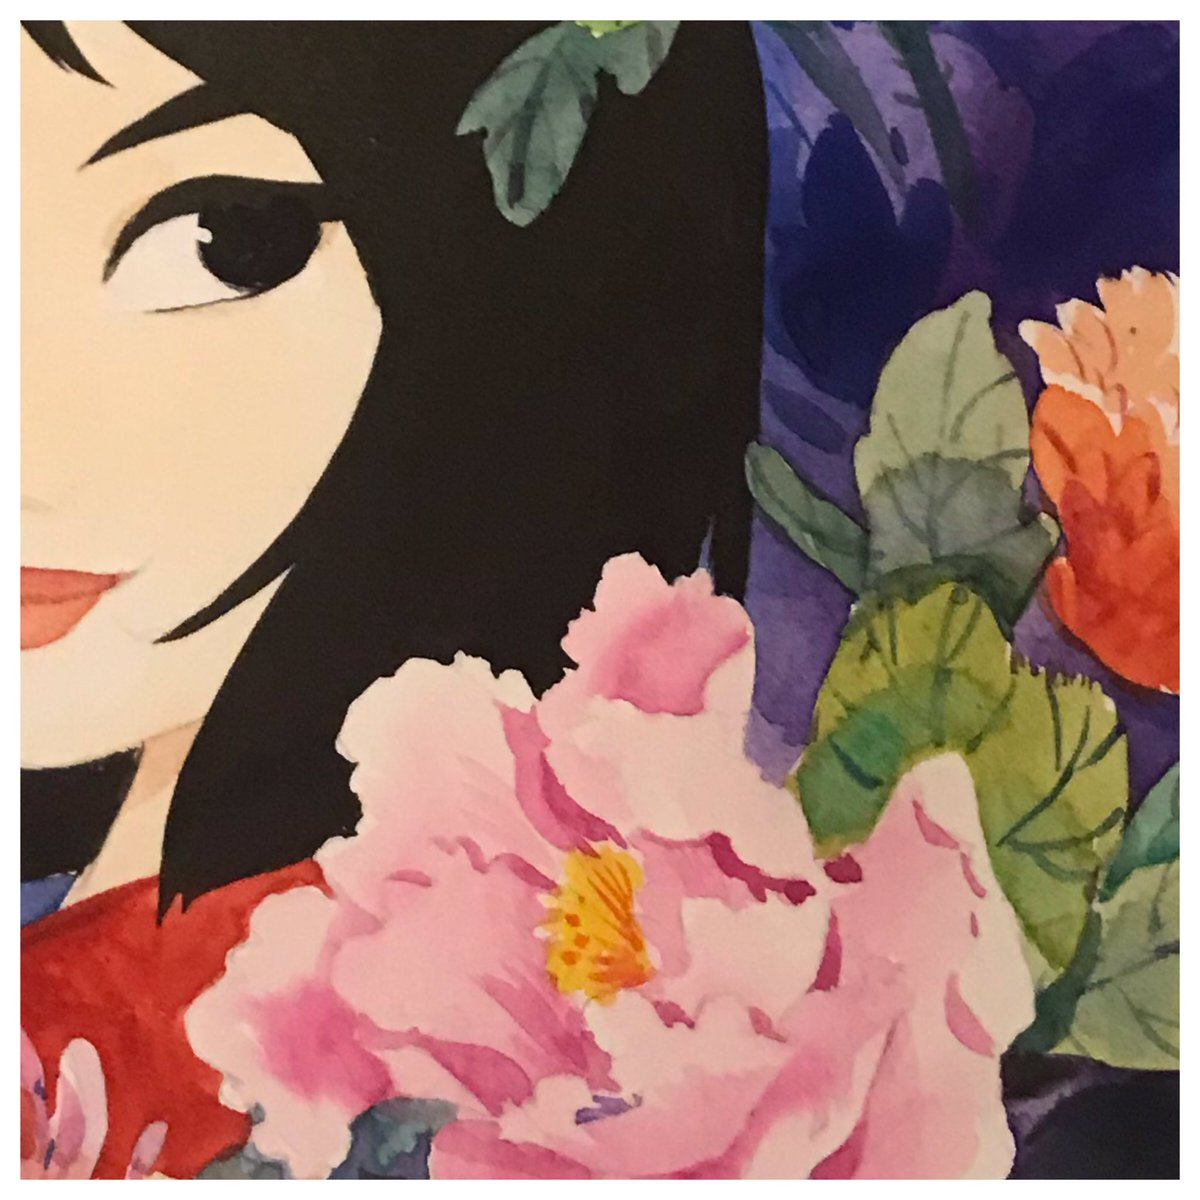 Peek at my Mulan piece for @gallerynucleus Mulan tribute show. <br>http://pic.twitter.com/I9PuzwyZwB